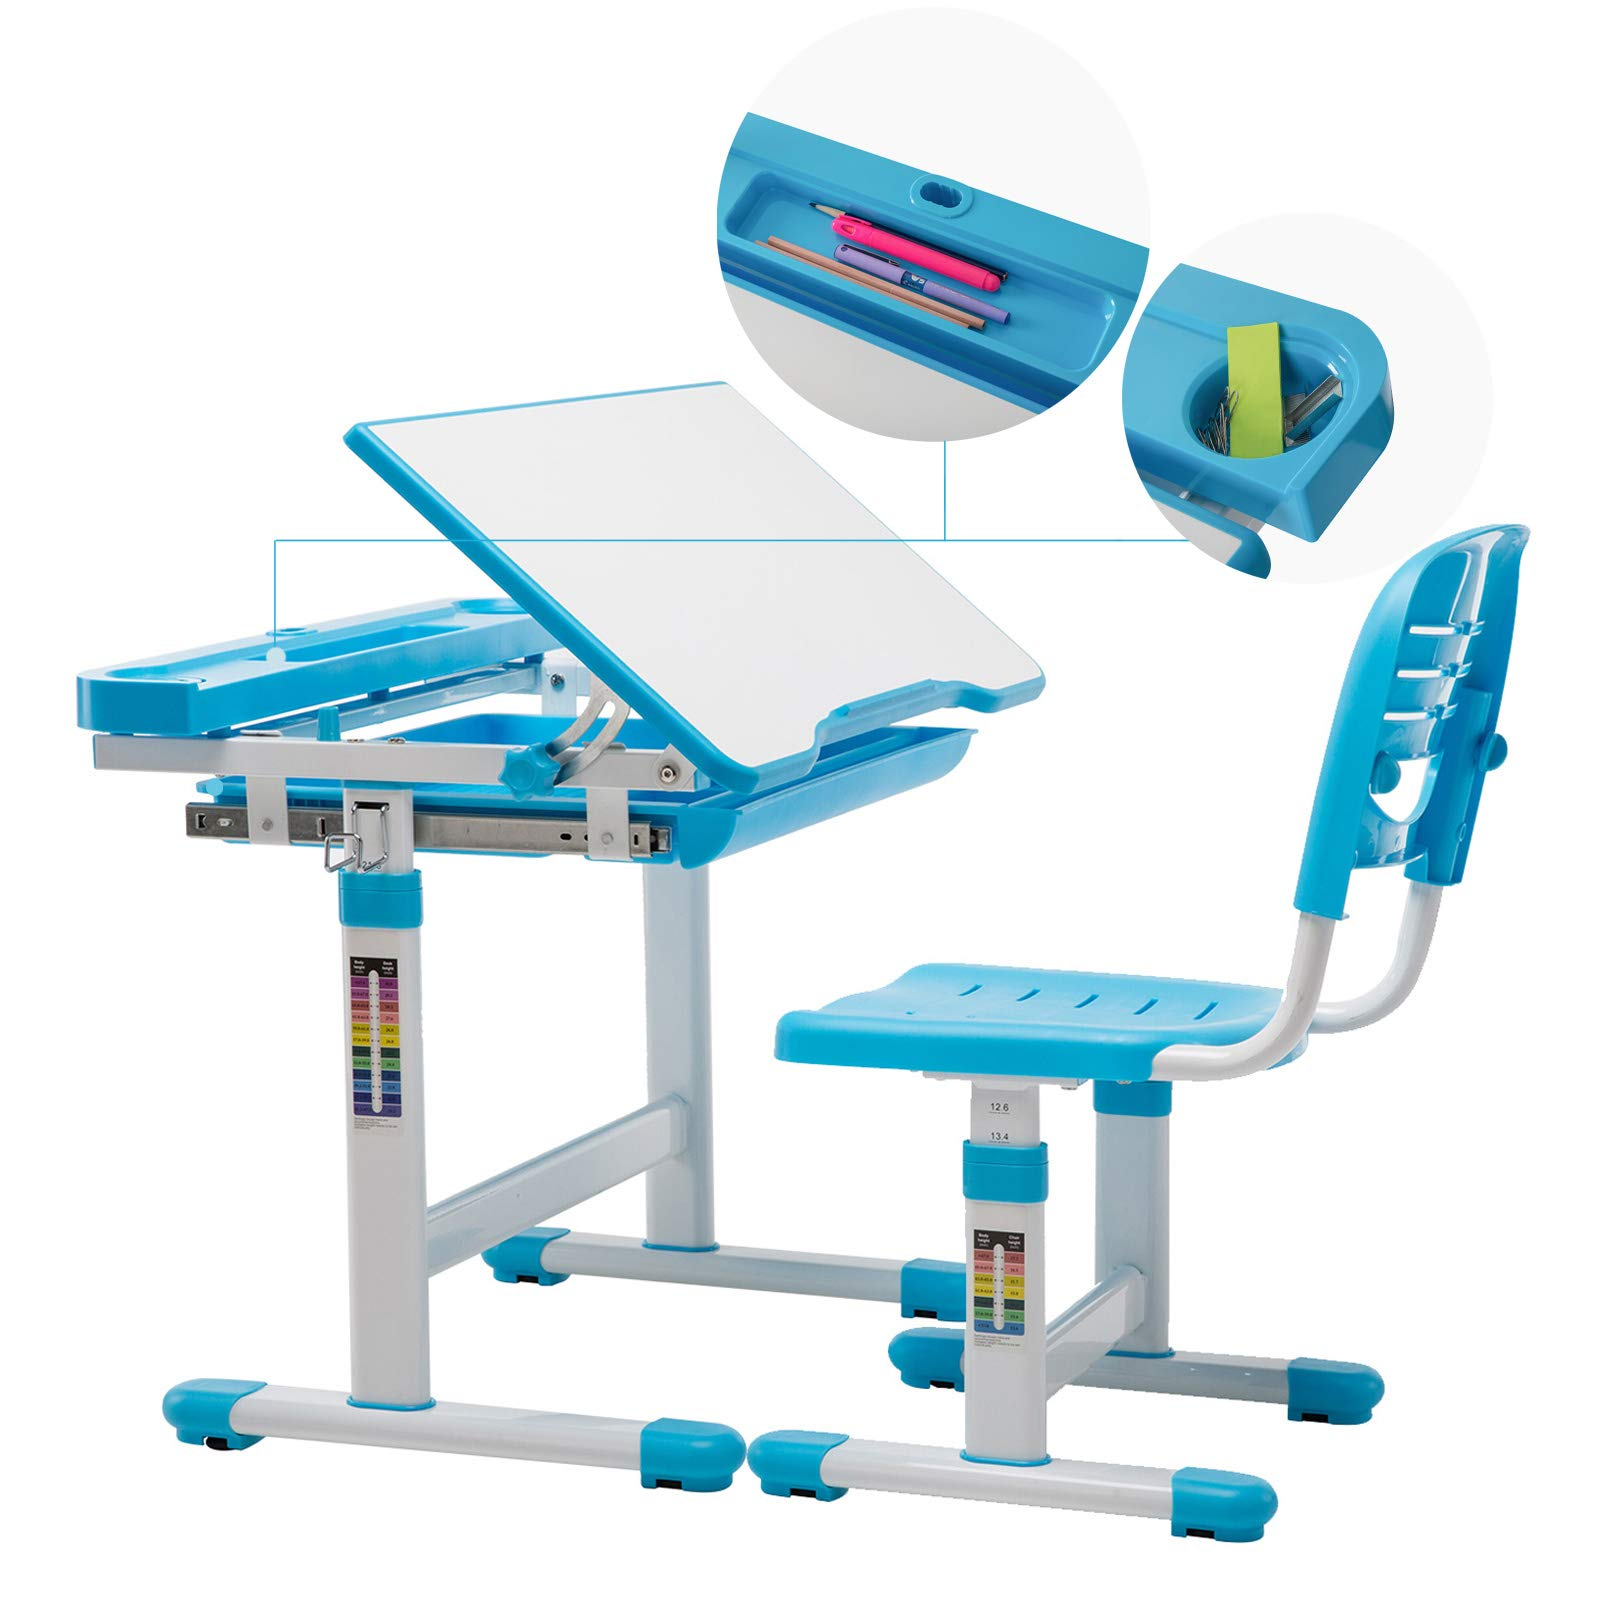 Children's Desk Chair Set, Height Adjustable Kids Student School Study Table Work Station with Storage,Blue